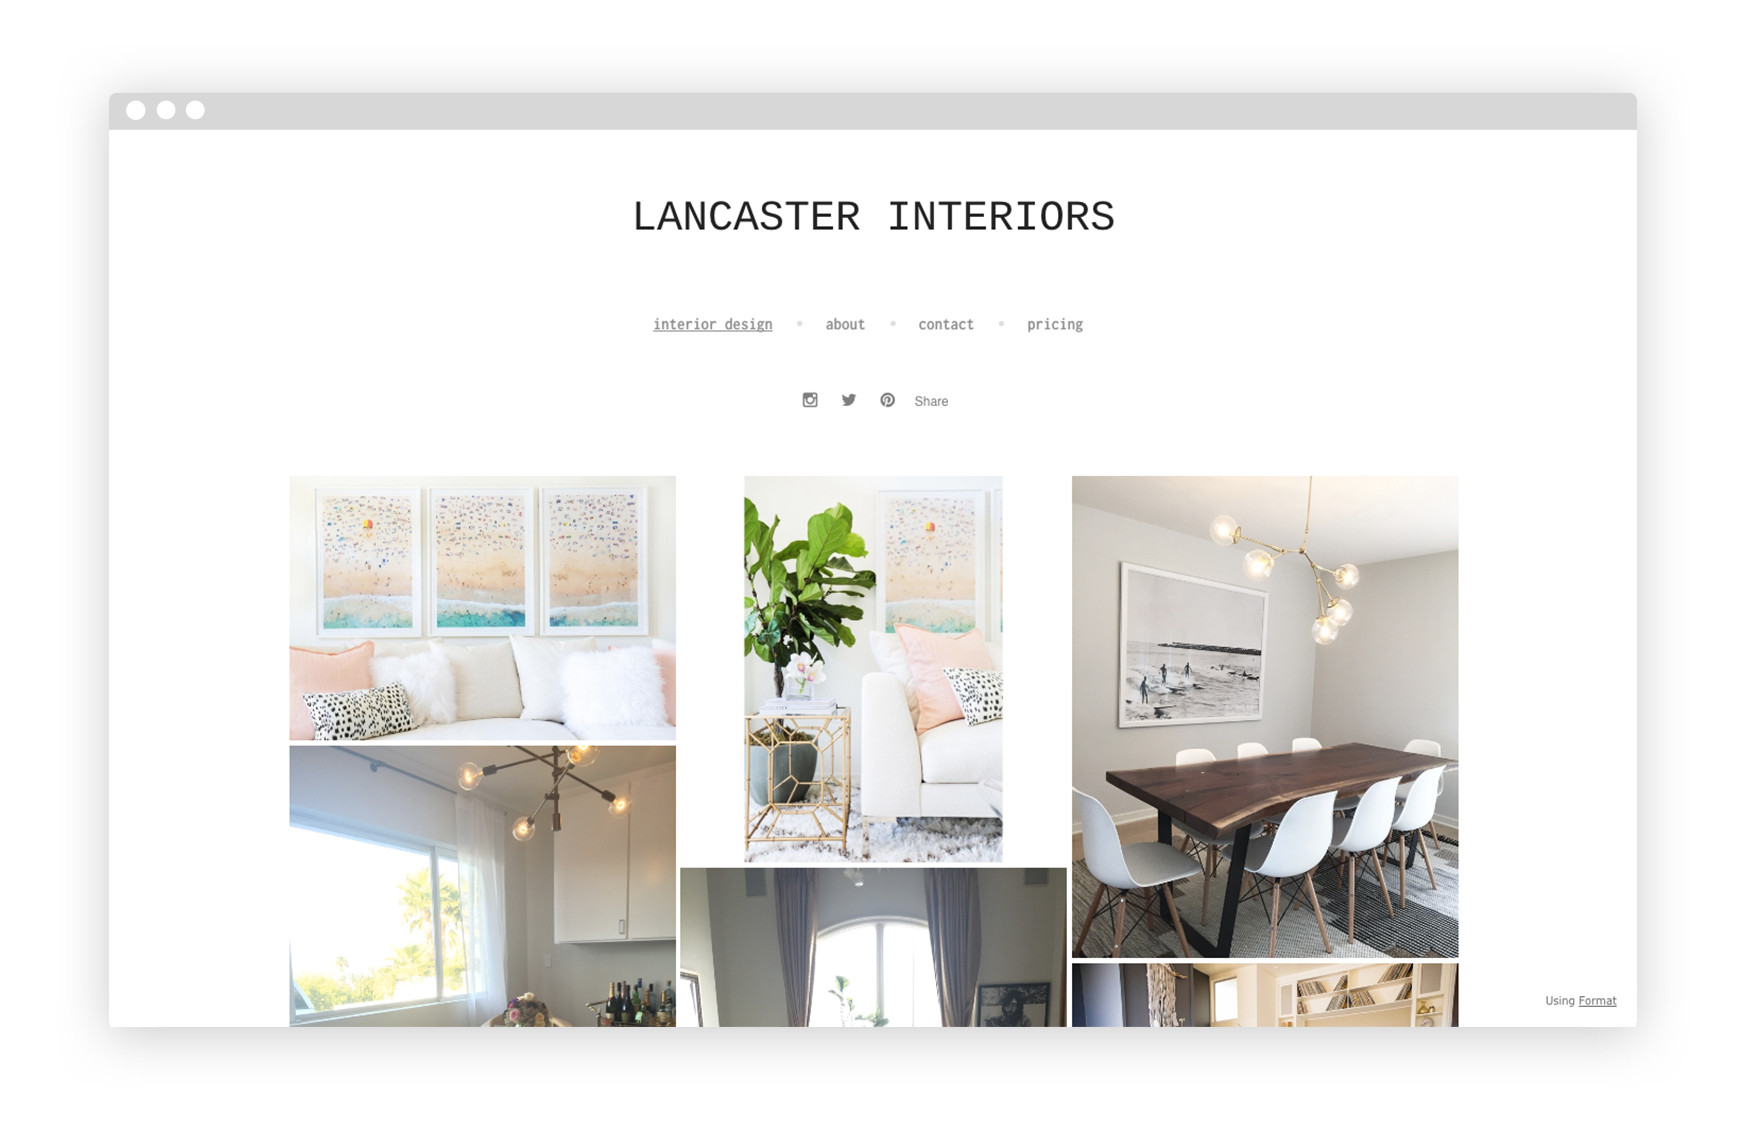 12 interior design portfolio website examples we love for Interior design portfolio